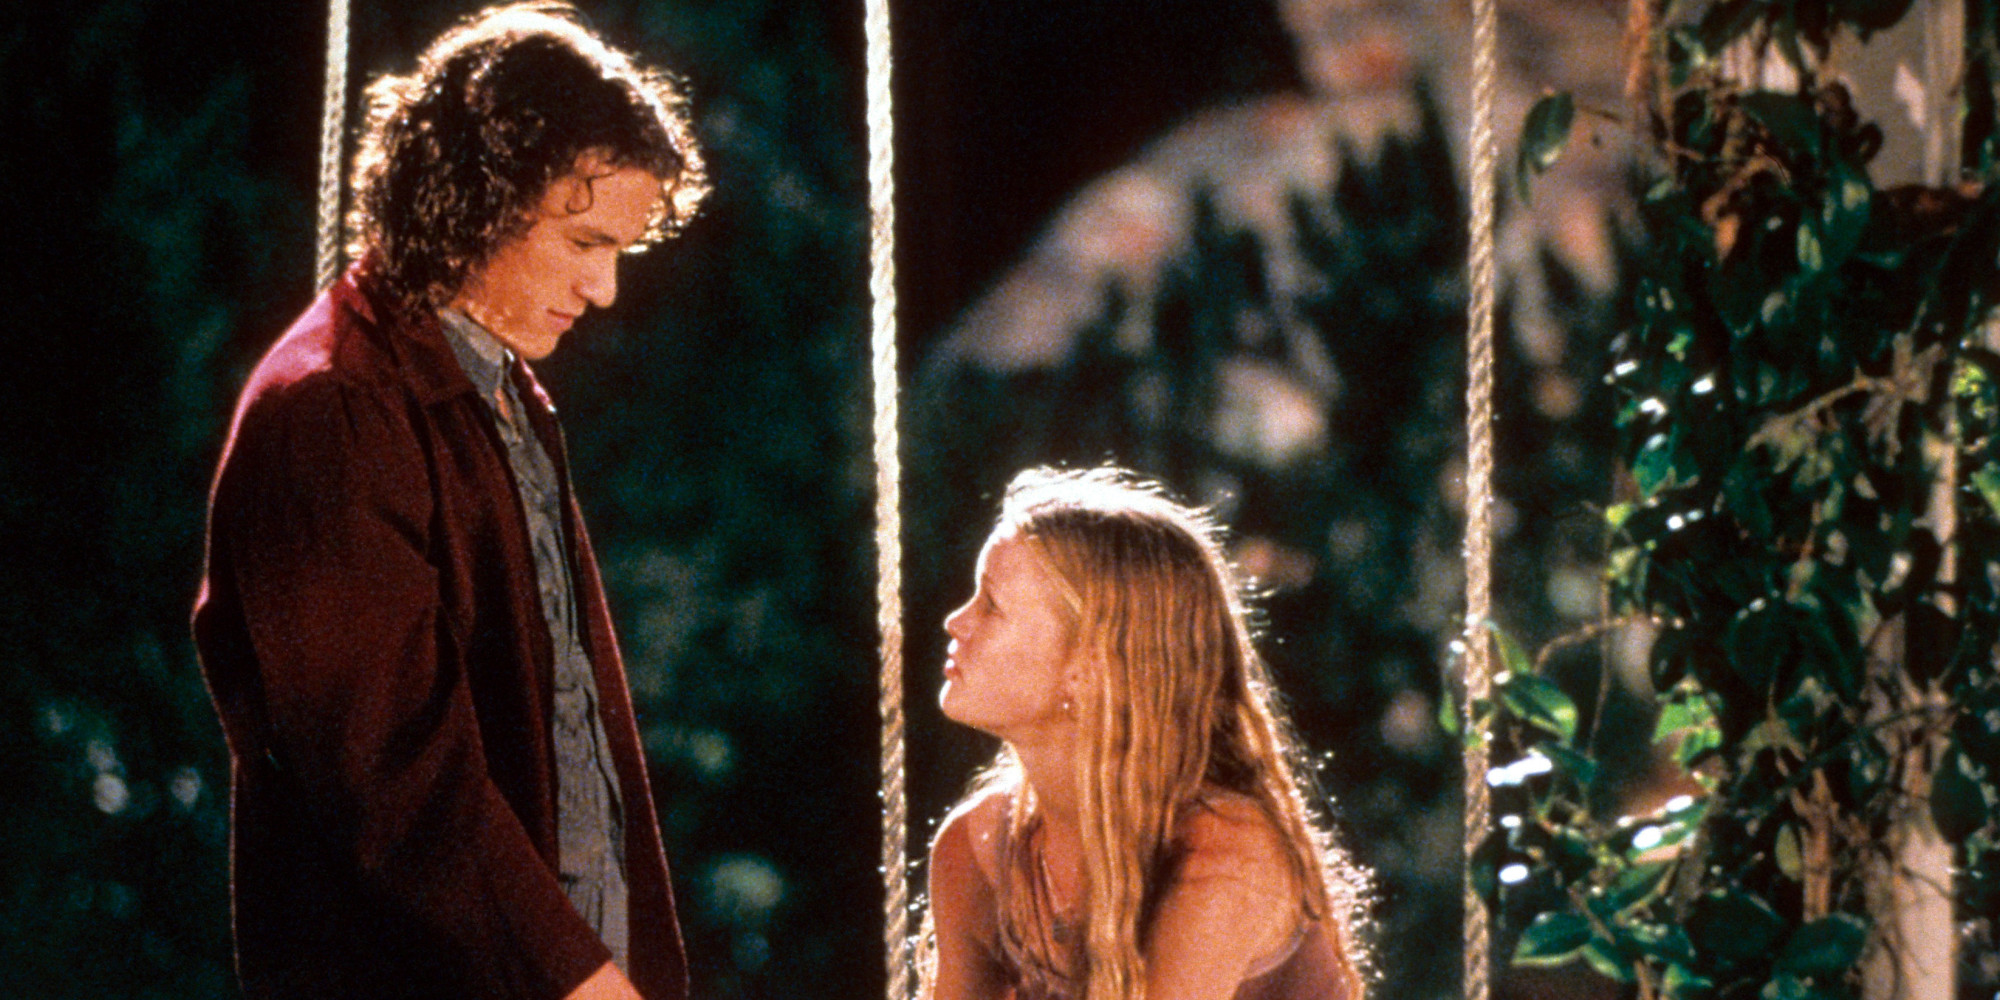 Ten Things I Hate About You: 9 Movies You Didn't Know Were Based On Shakespeare Stories